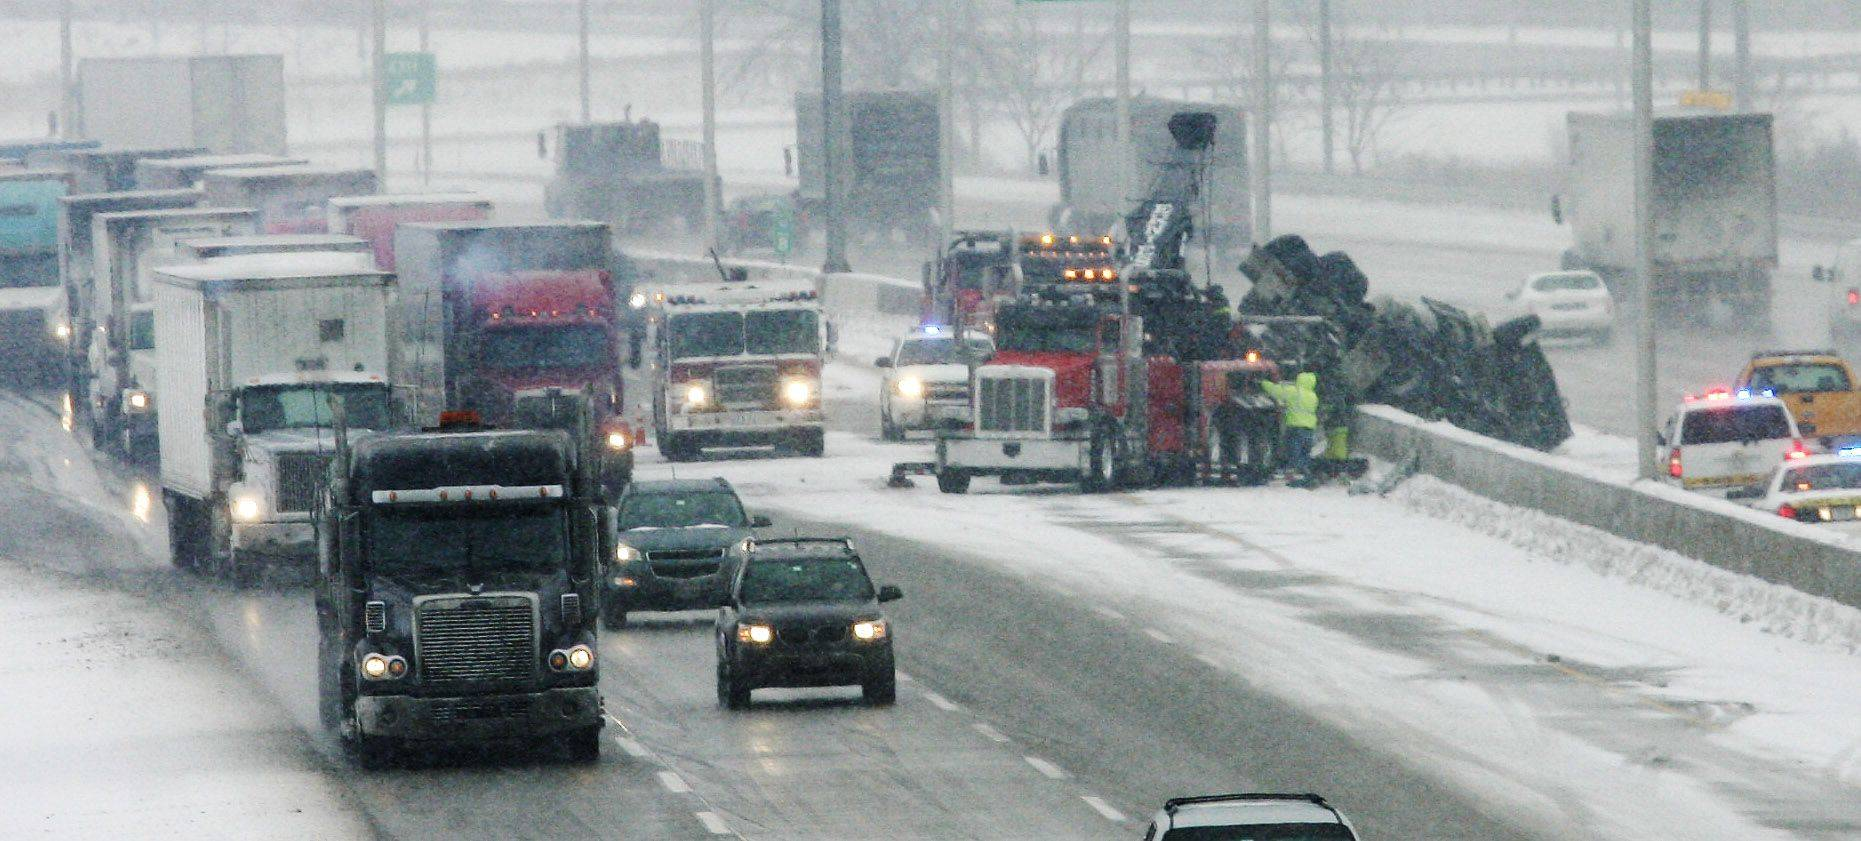 Illinois State Police are still probing the cause of a Monday morning crash on the Tri-State Tollway in Gurnee. Keith Sphar of Hebron was seriously injured after the truck he was driving overturned and hit a concrete median.